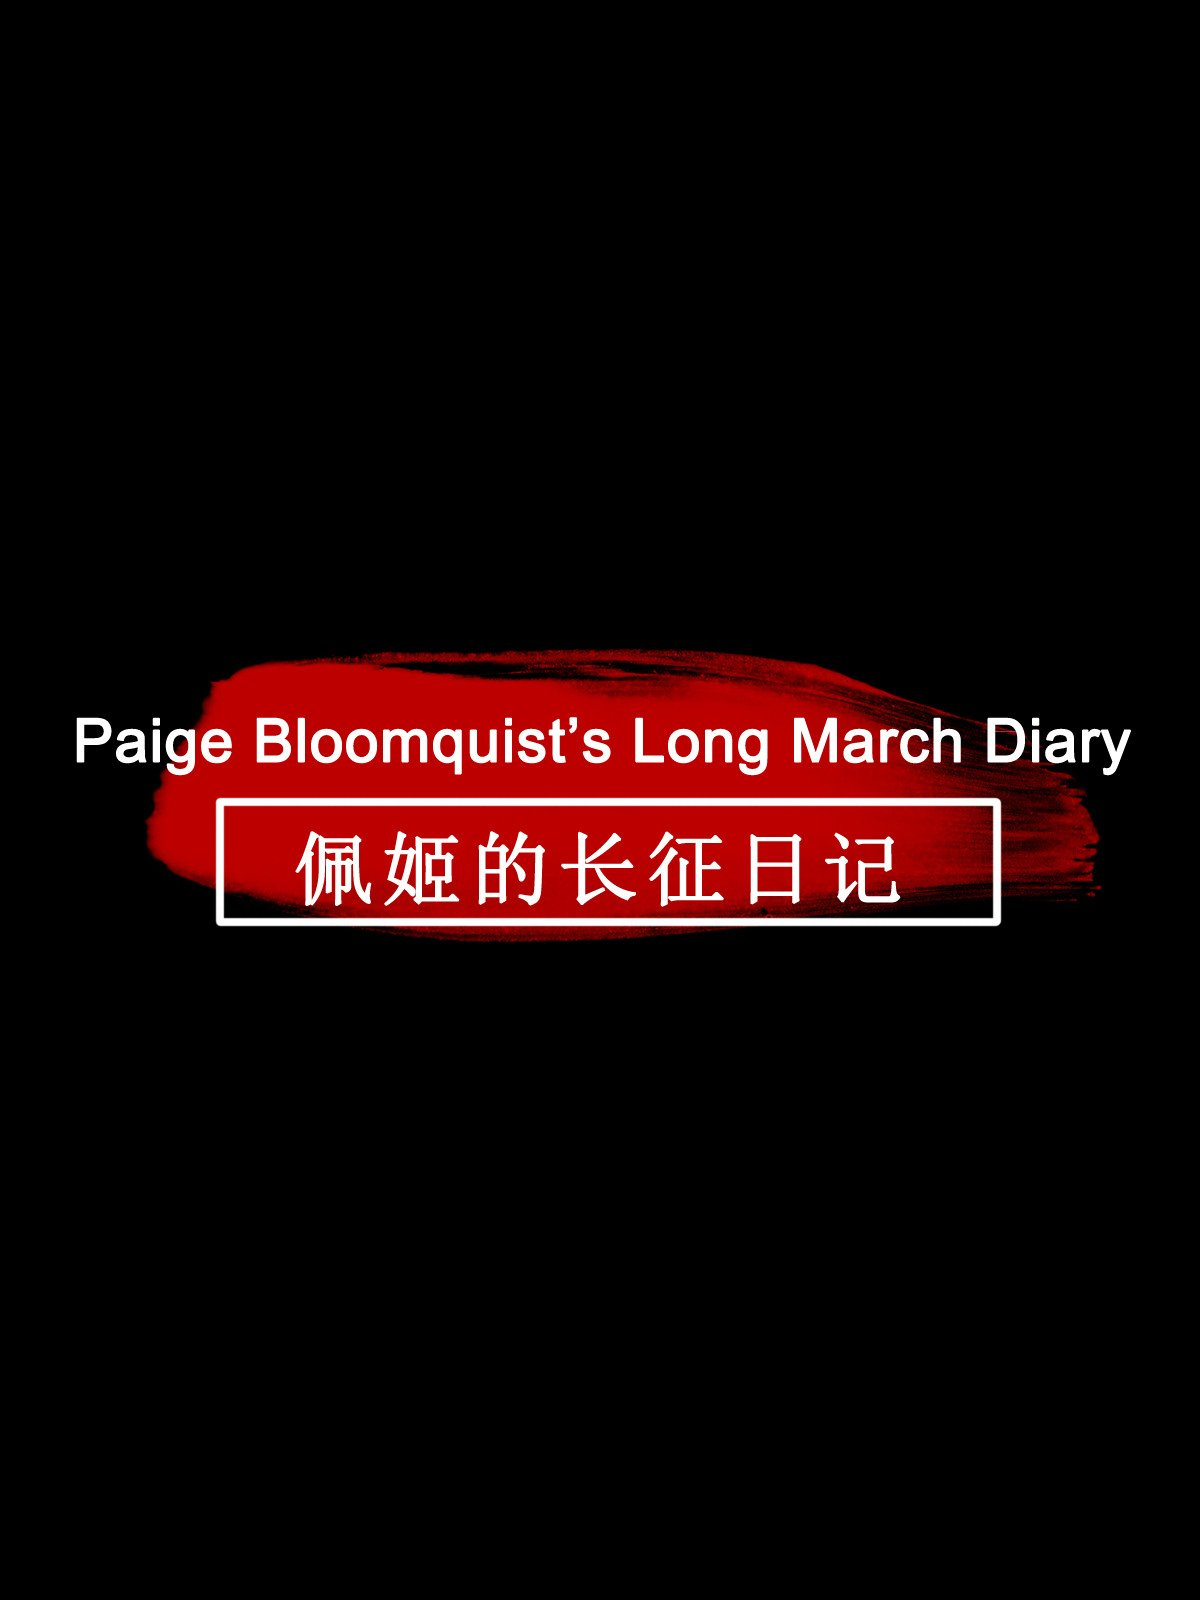 Paige Bloomquist's Long March Diary